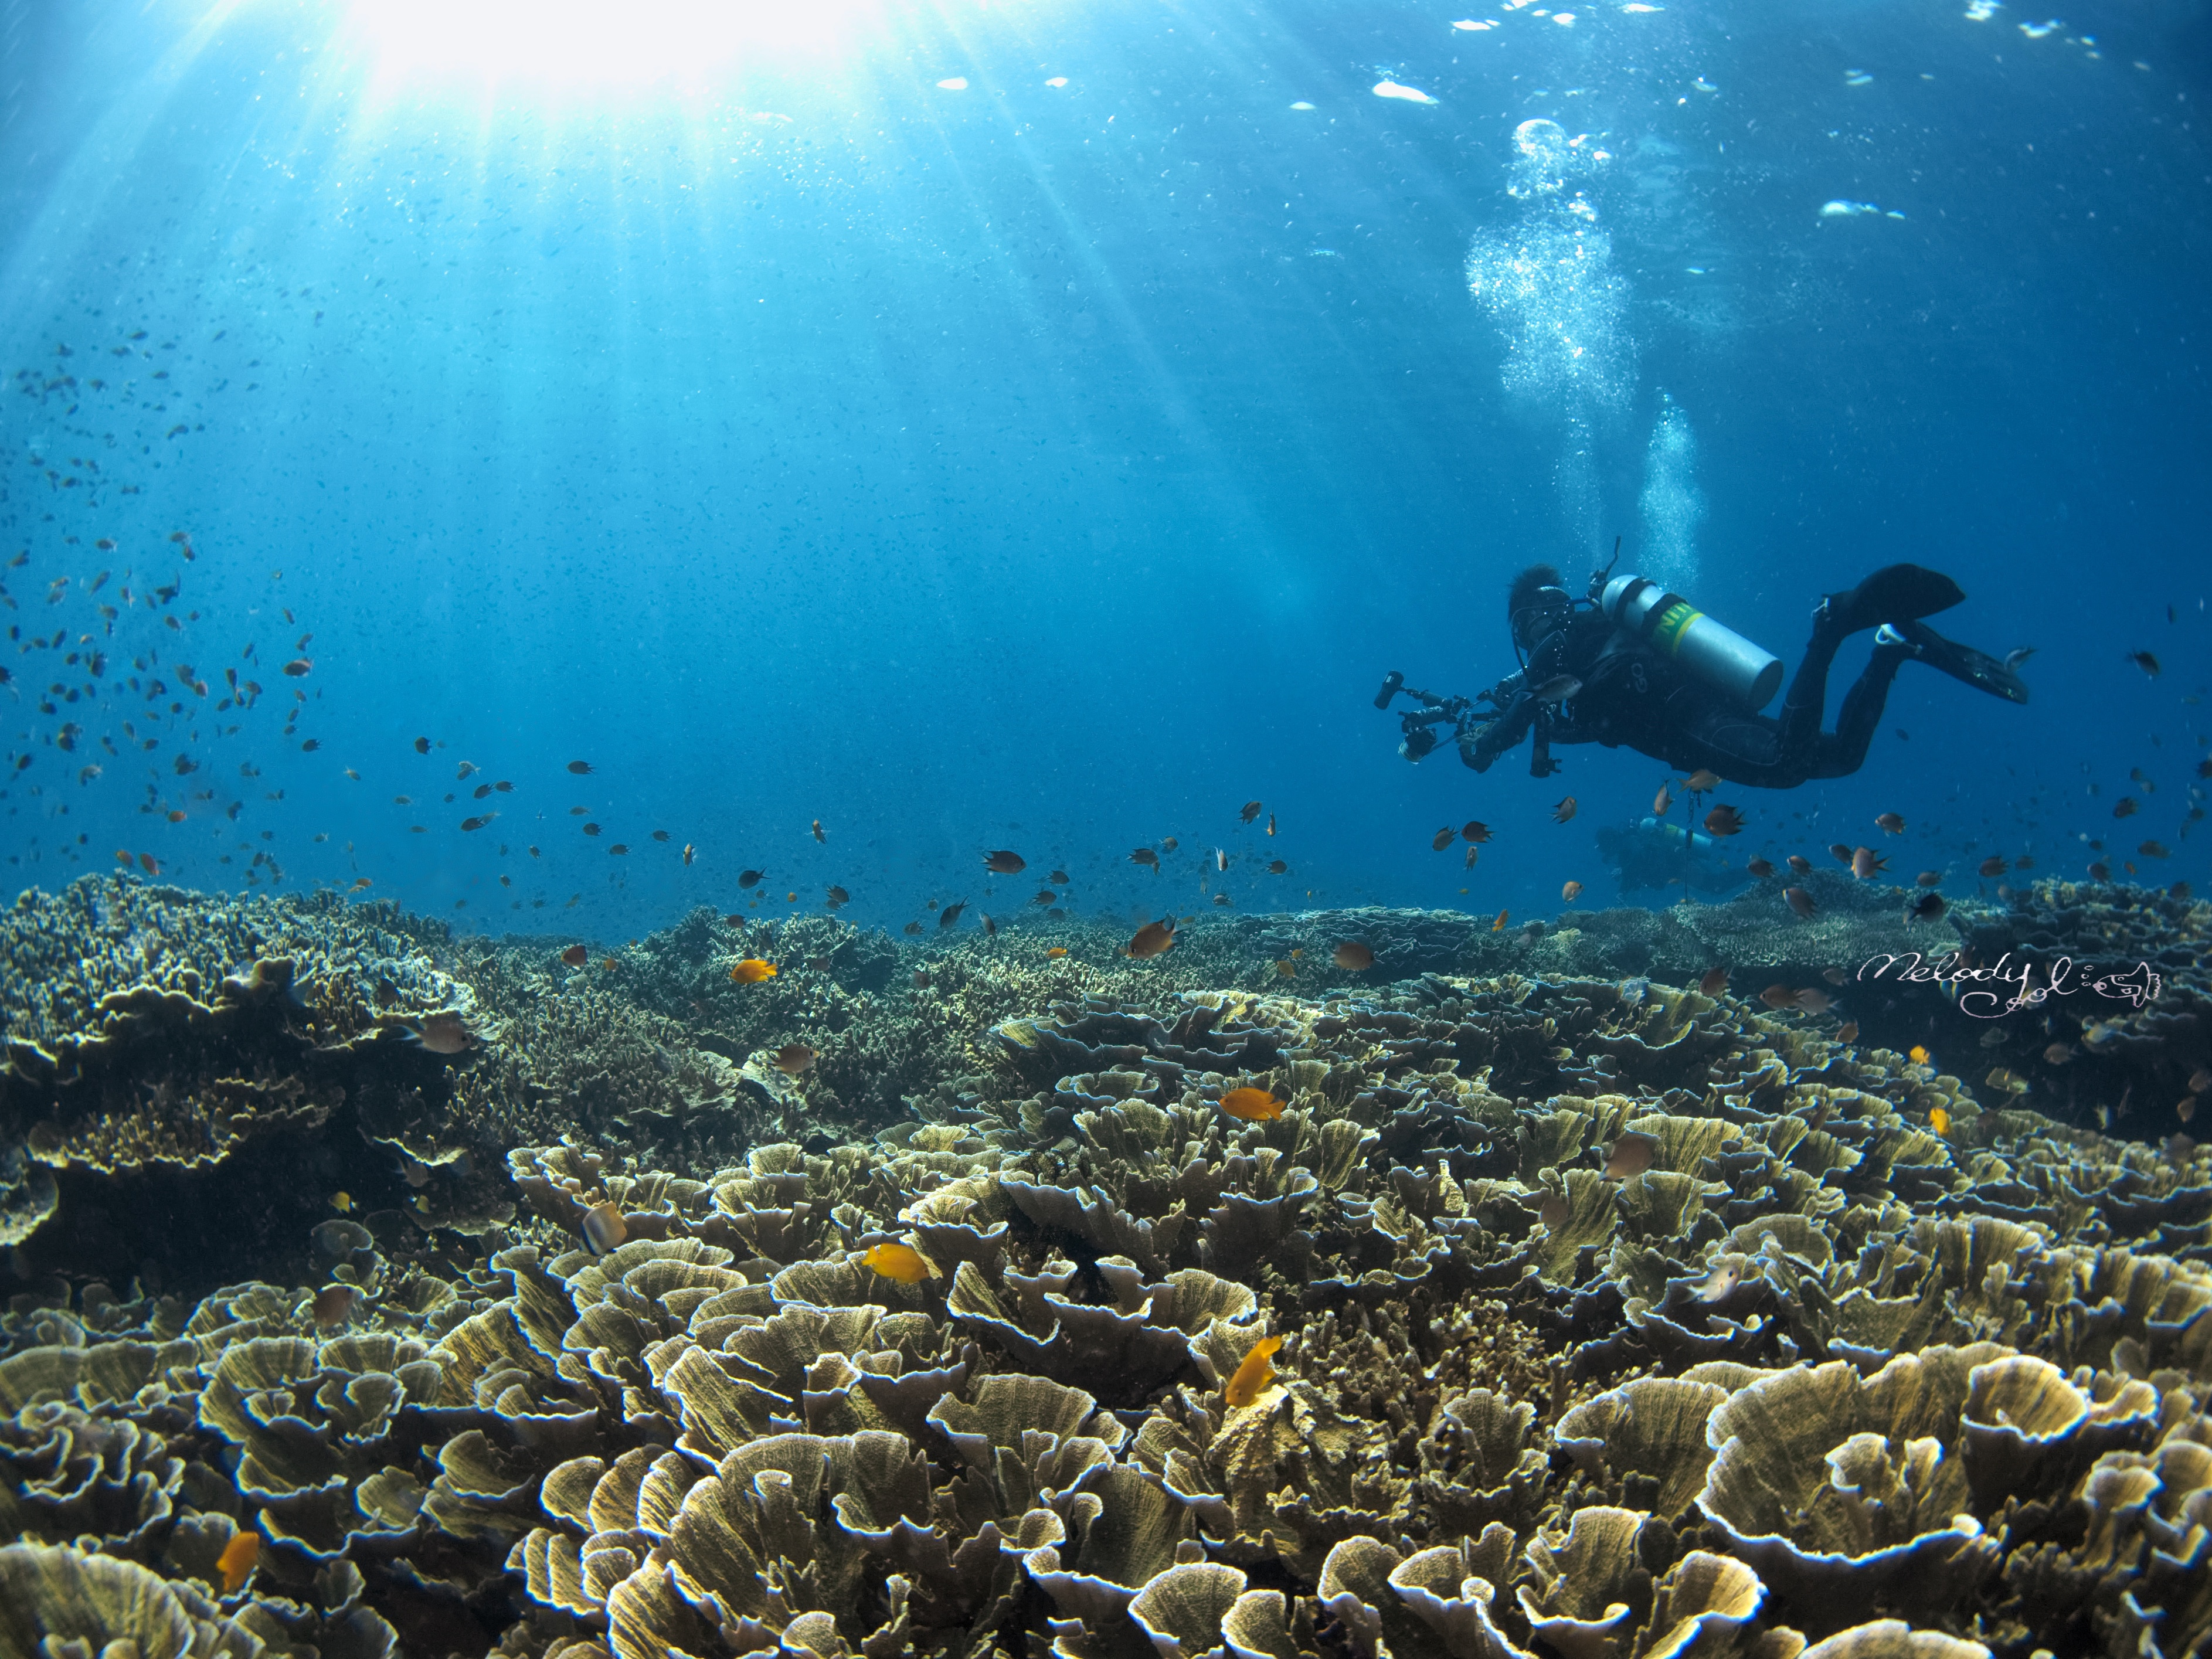 Corals by Cool.jpg